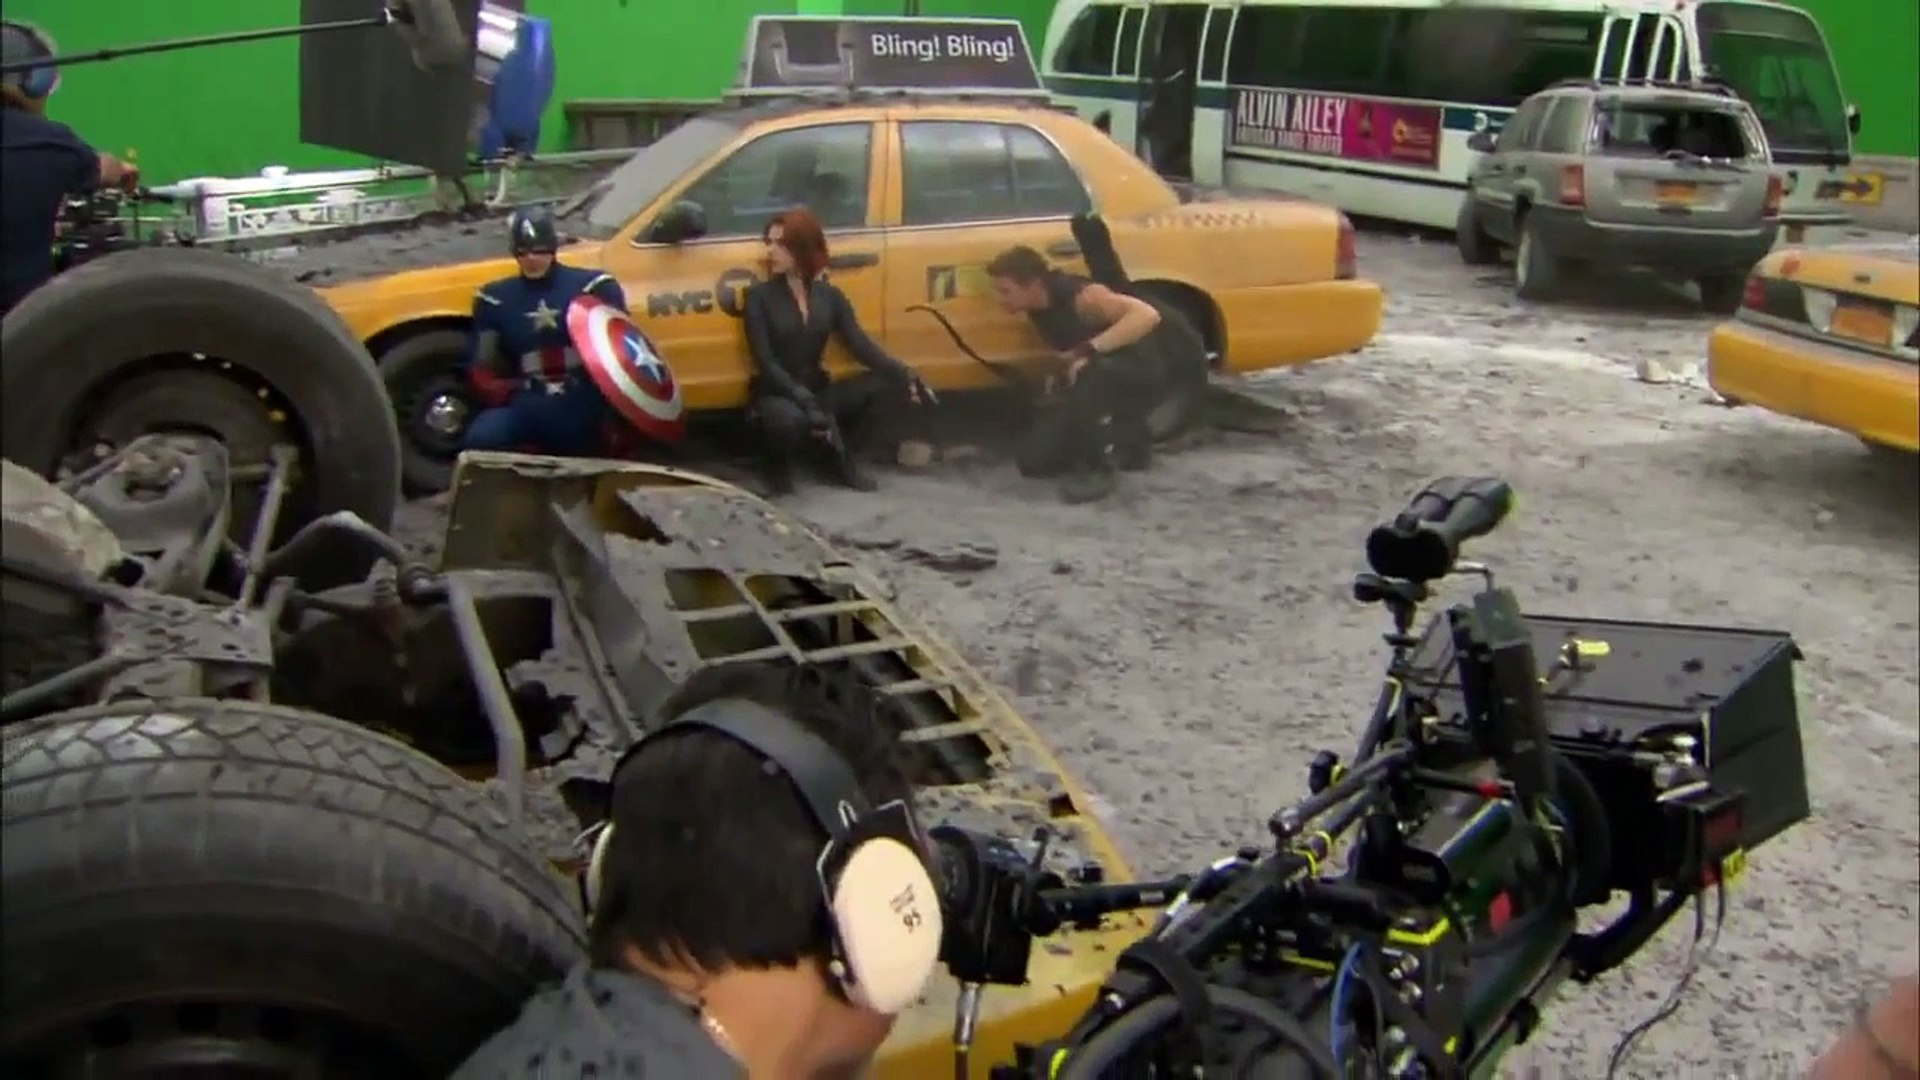 #2 The Avengers Behind the Scenes